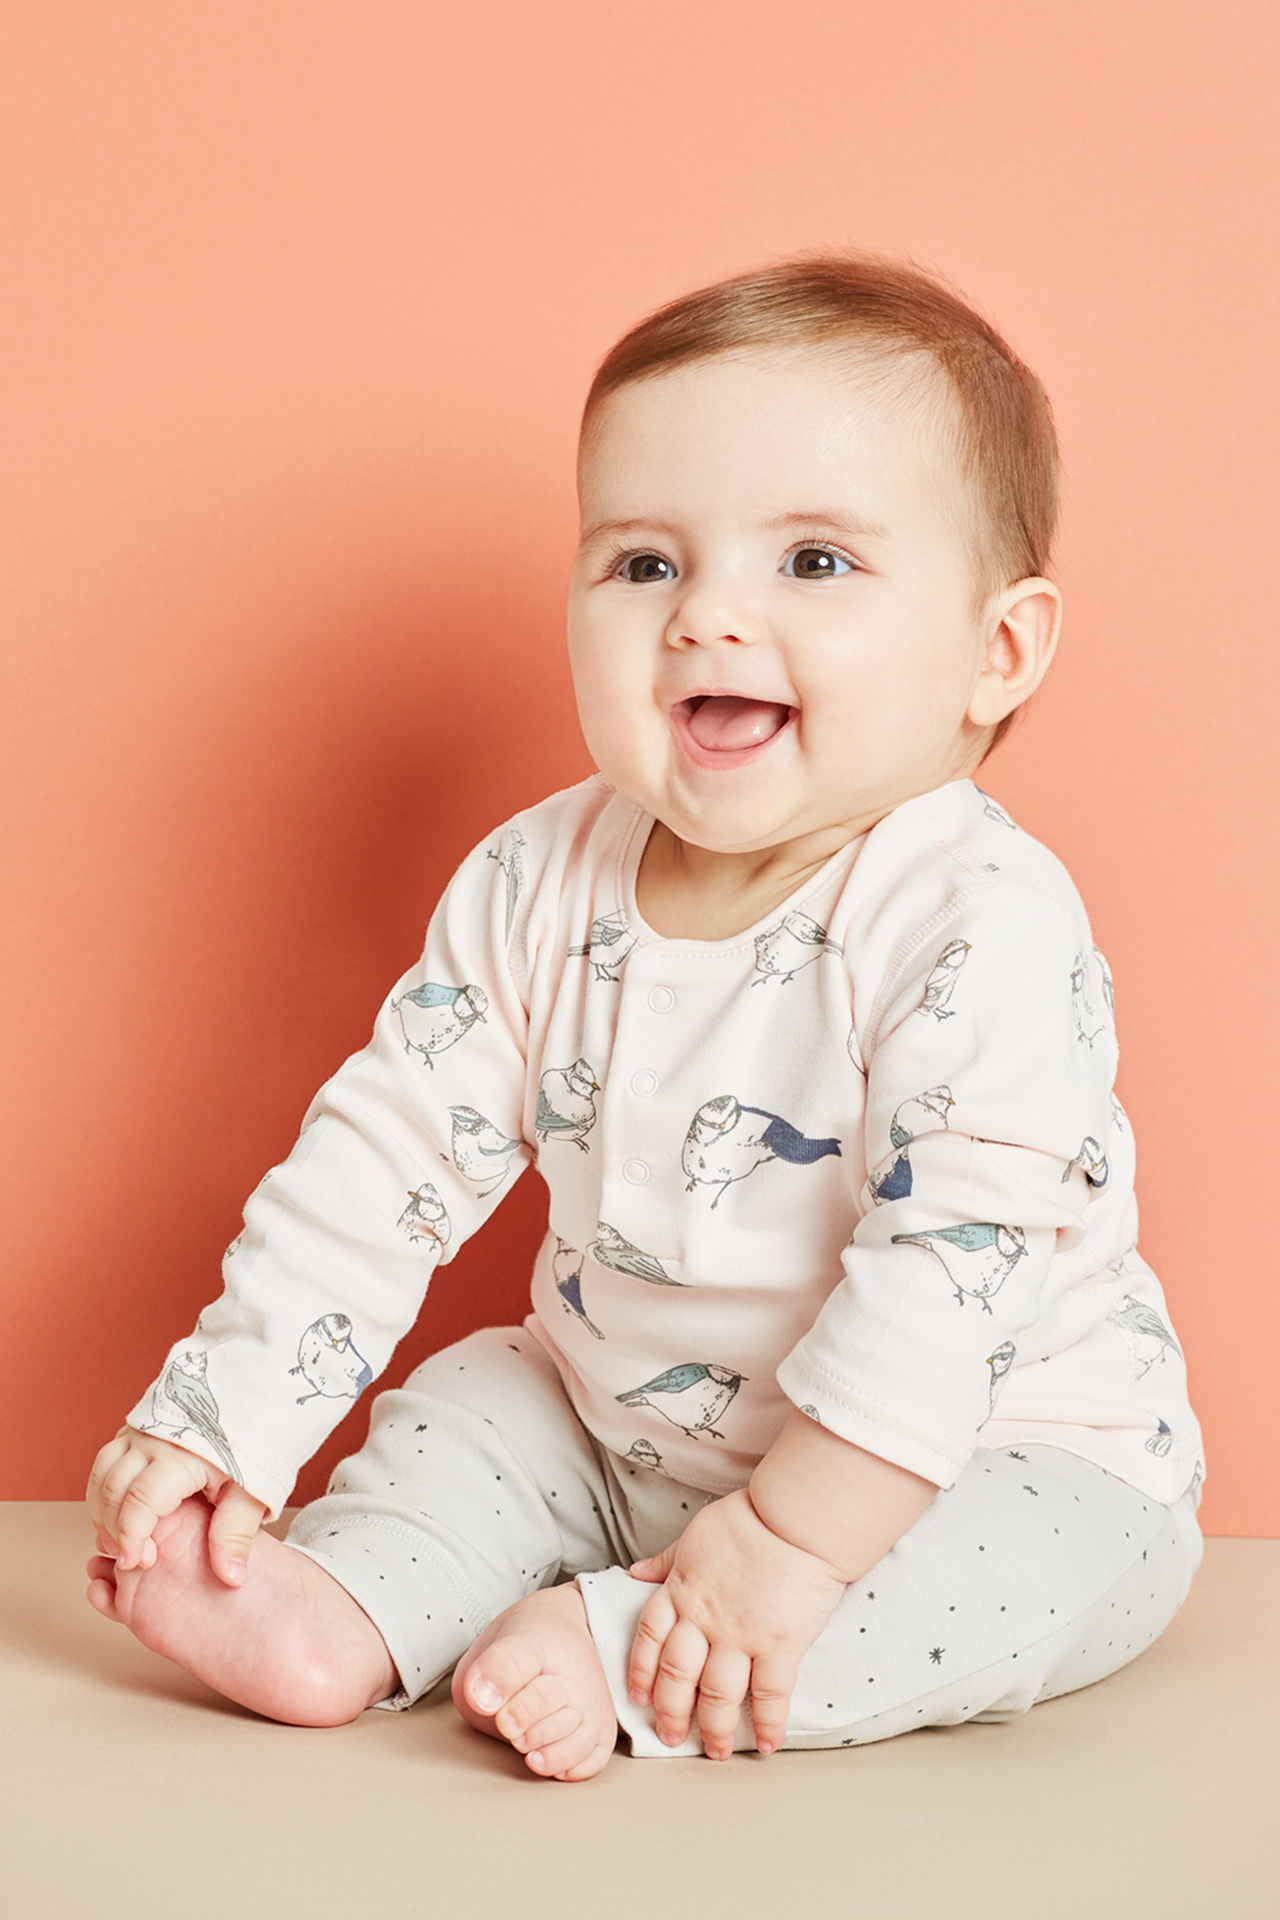 Laughing baby fashion